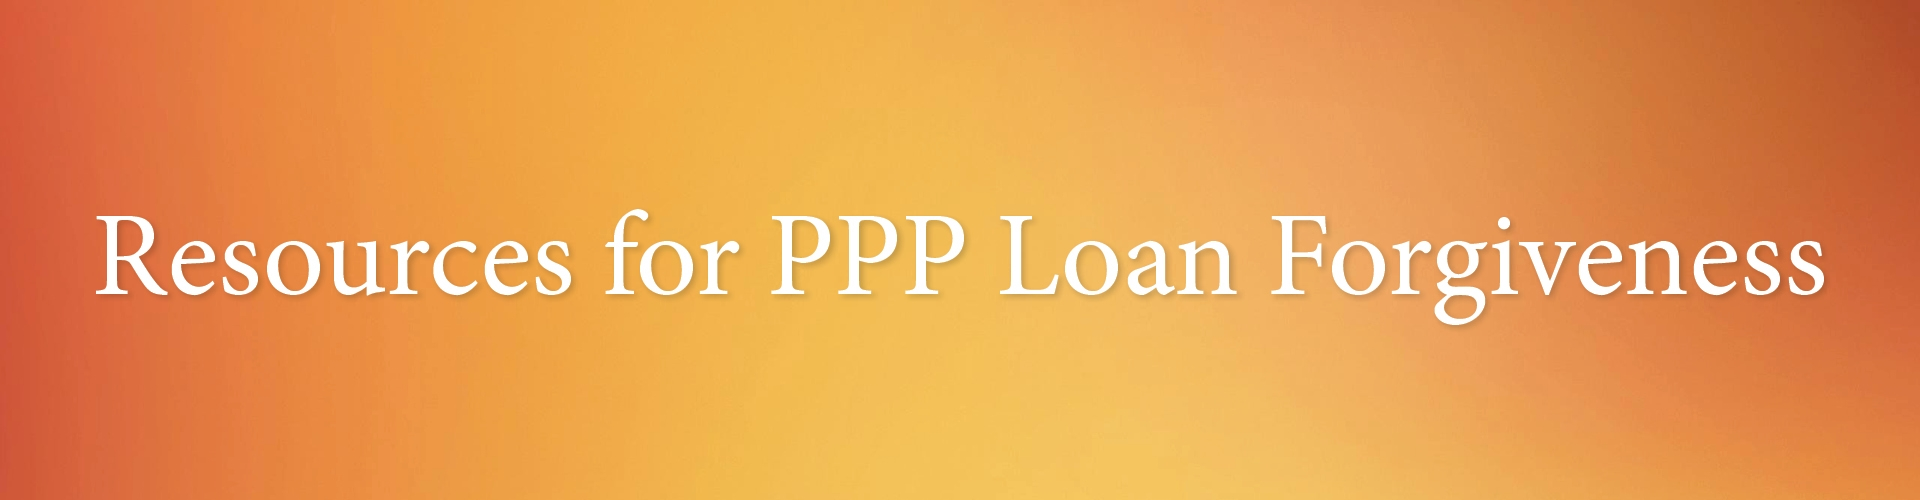 Resources for PPP Loan Forgiveness Banner